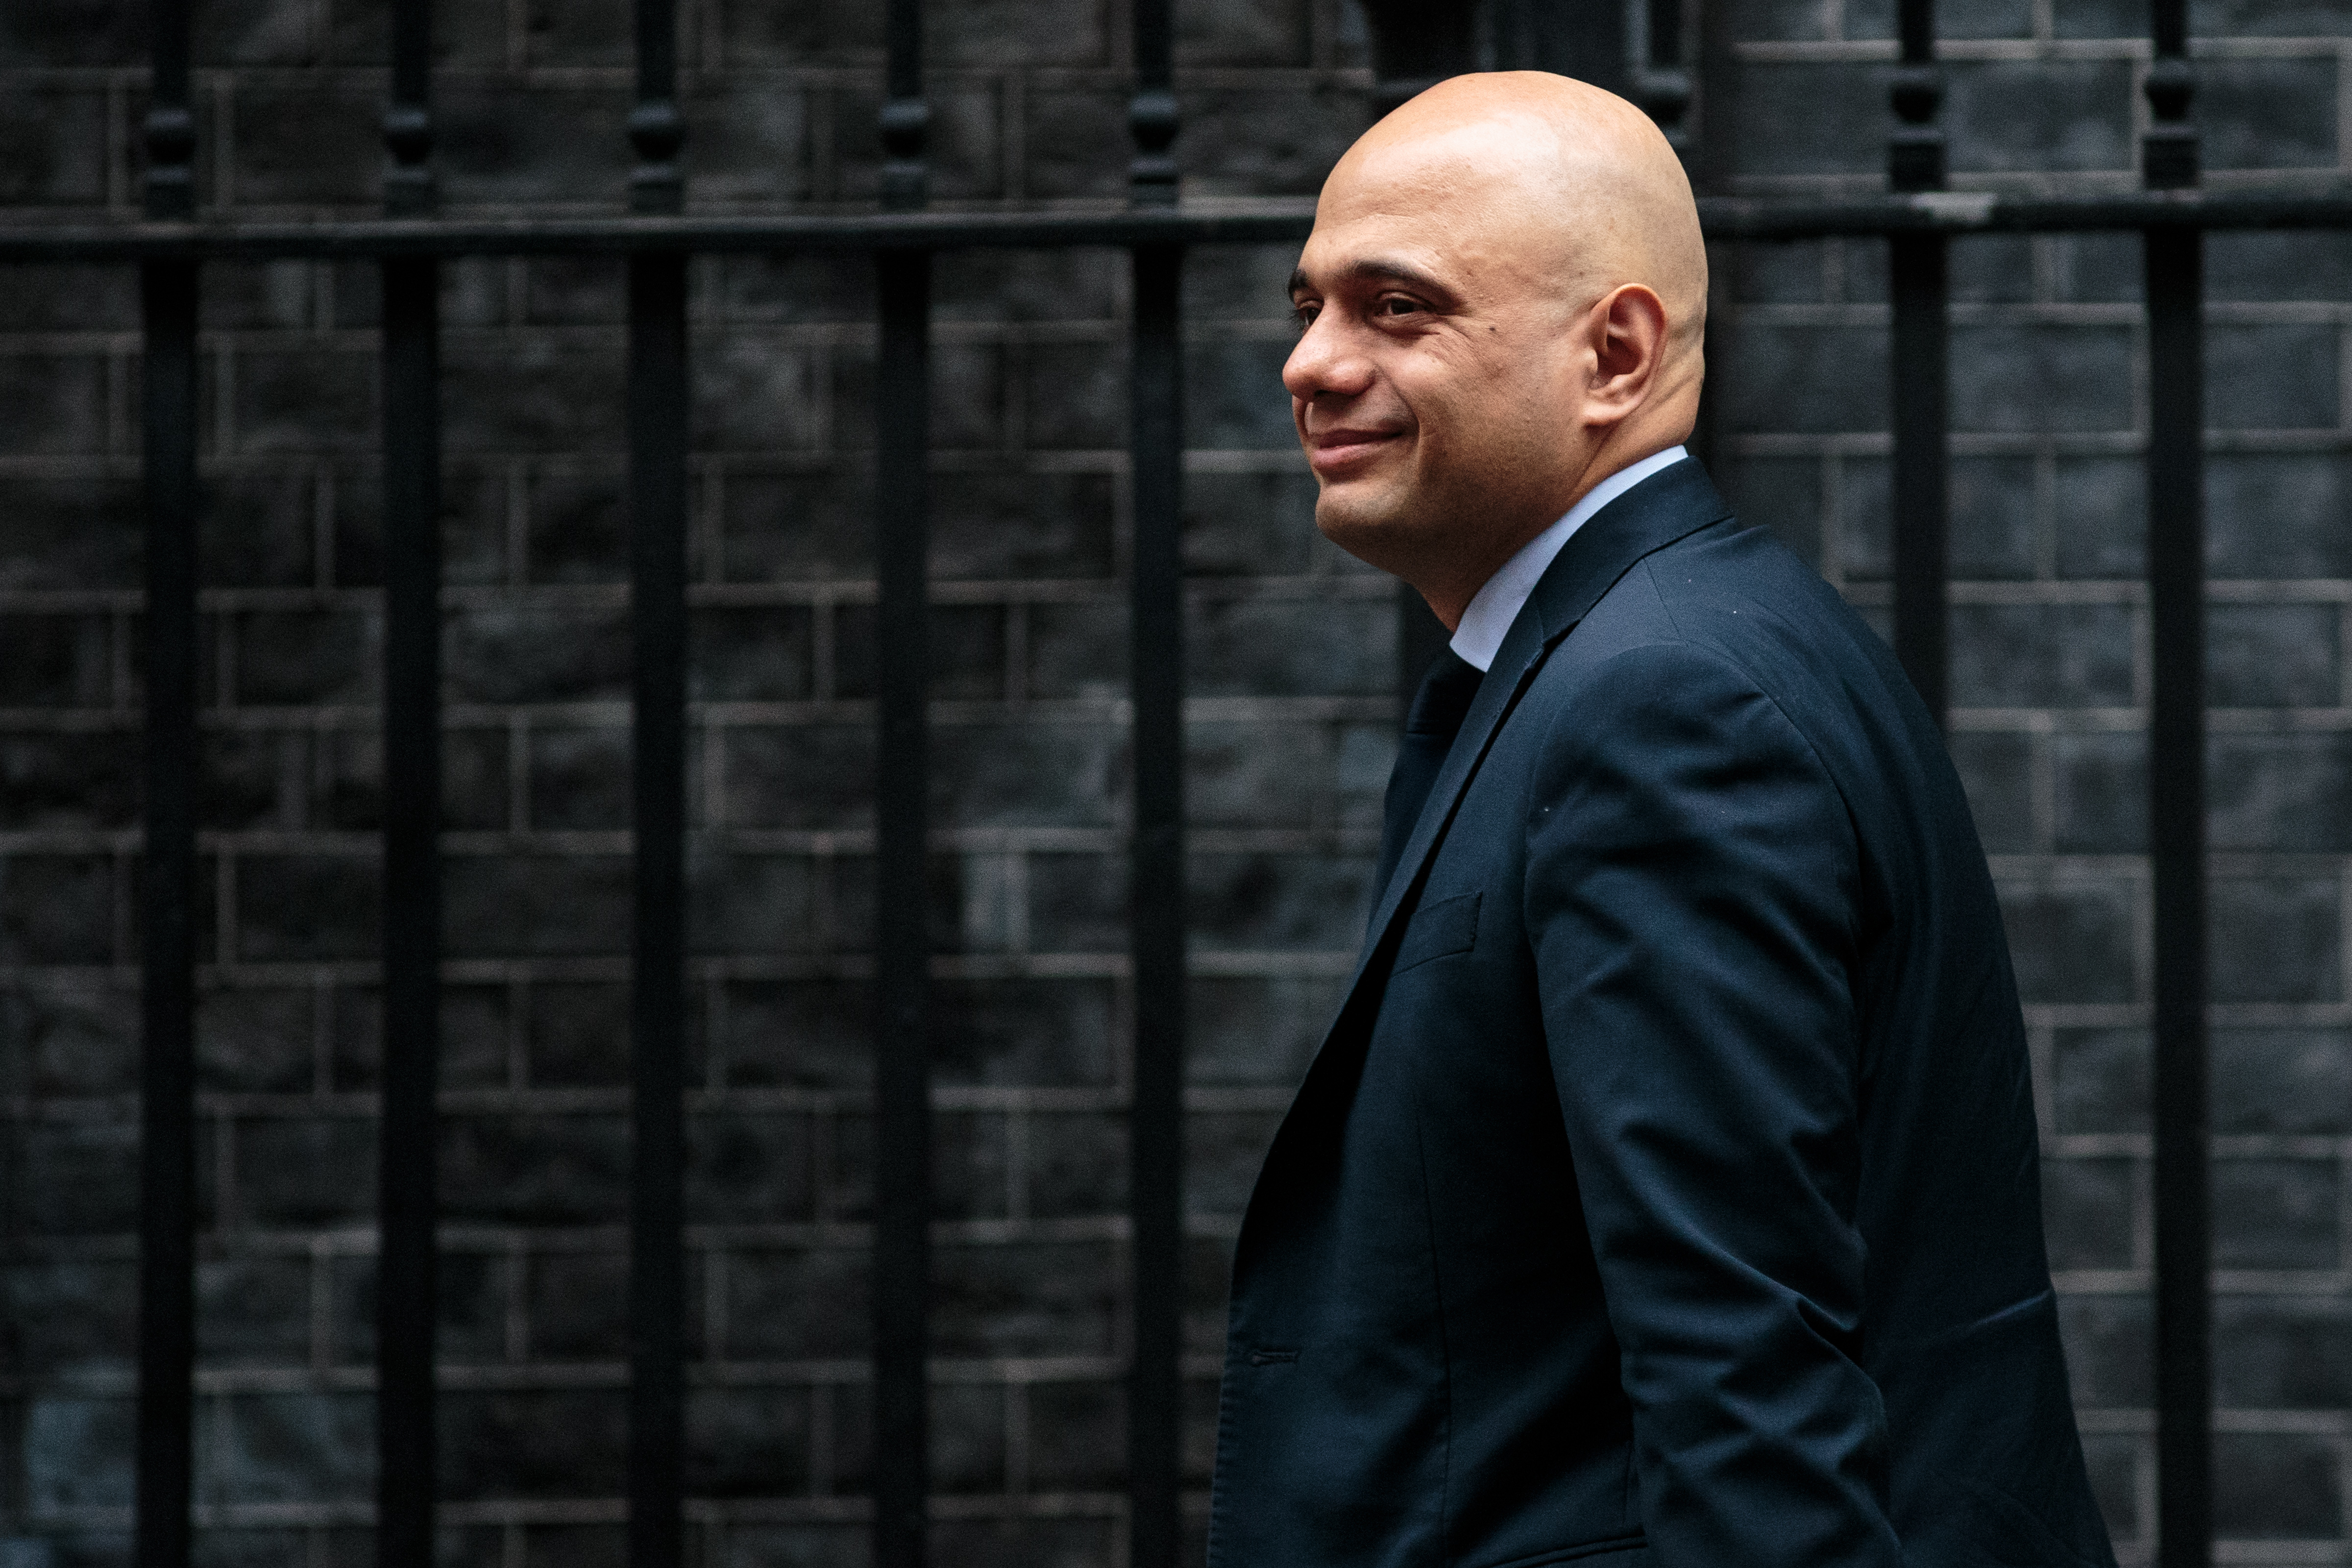 Home Secretary Sajid Javid arrives for the weekly Cabinet meeting at Number 10 Downing Street on February 5, 2019, in London, England. (Getty)